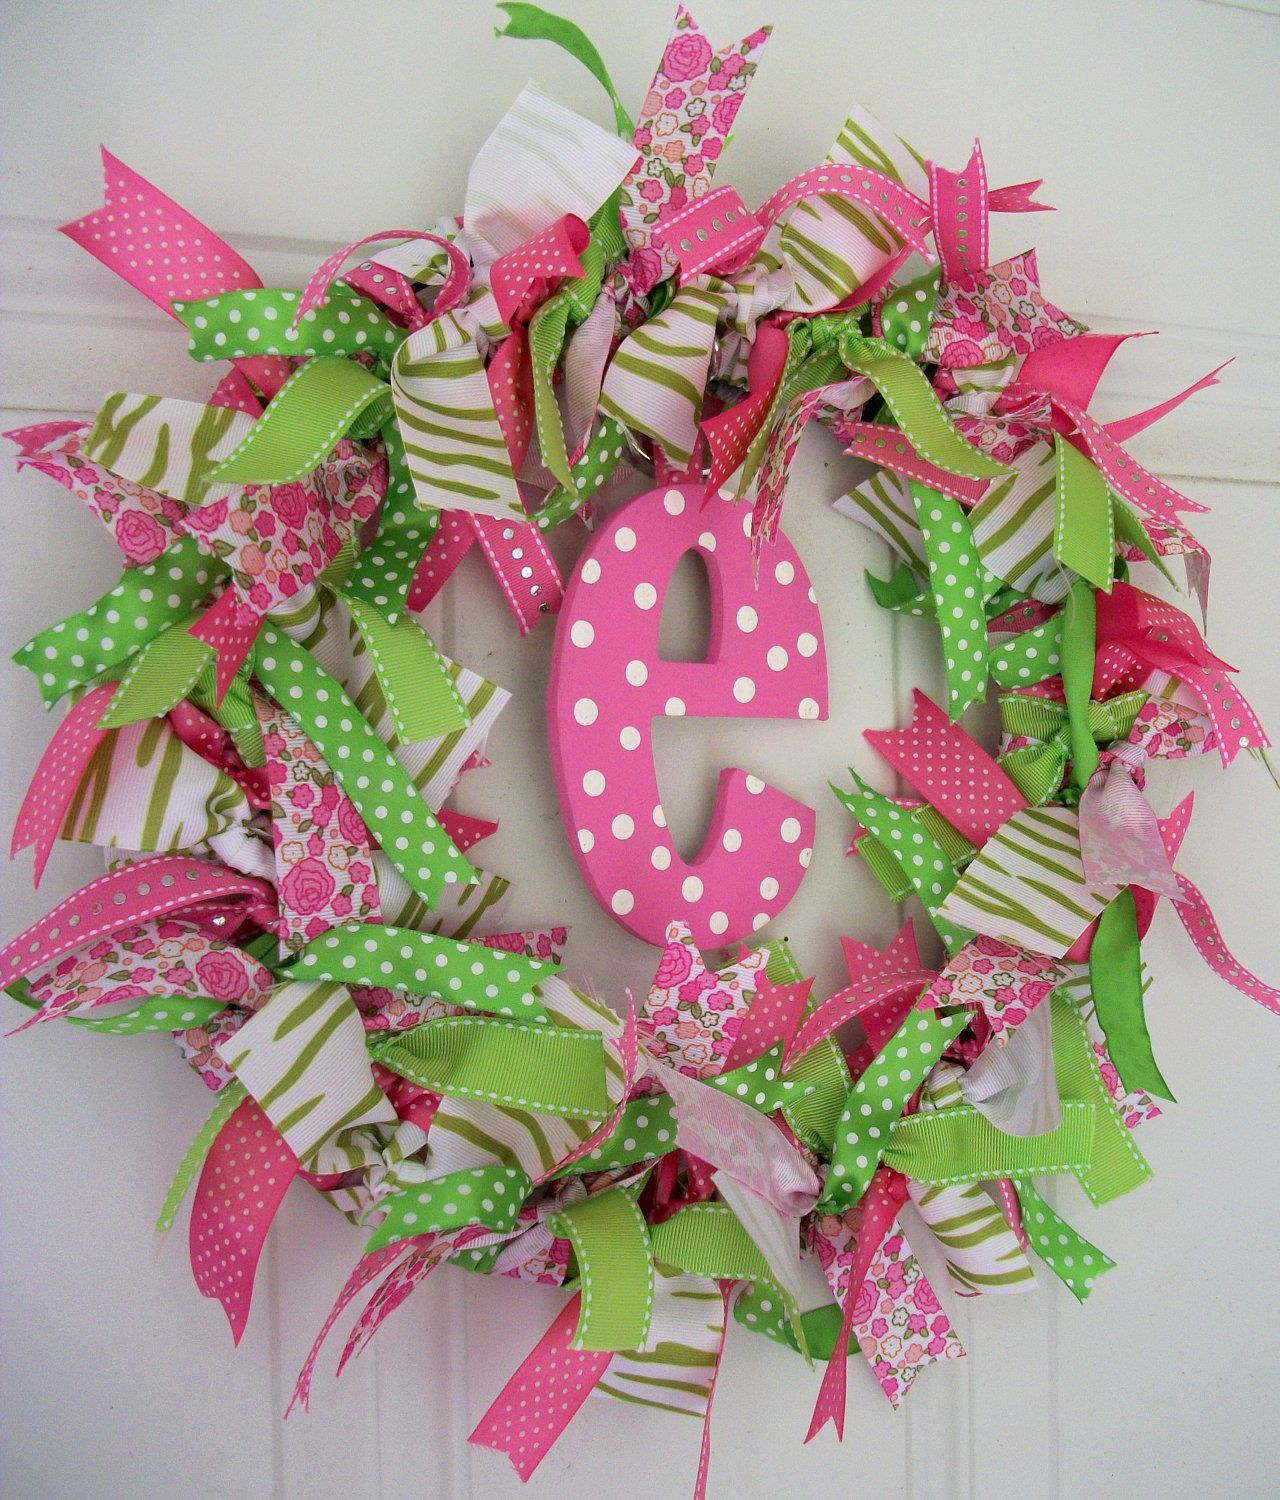 Ribbon wreath tutorial on wire hanger - Wreaths What Should Be My First Diy